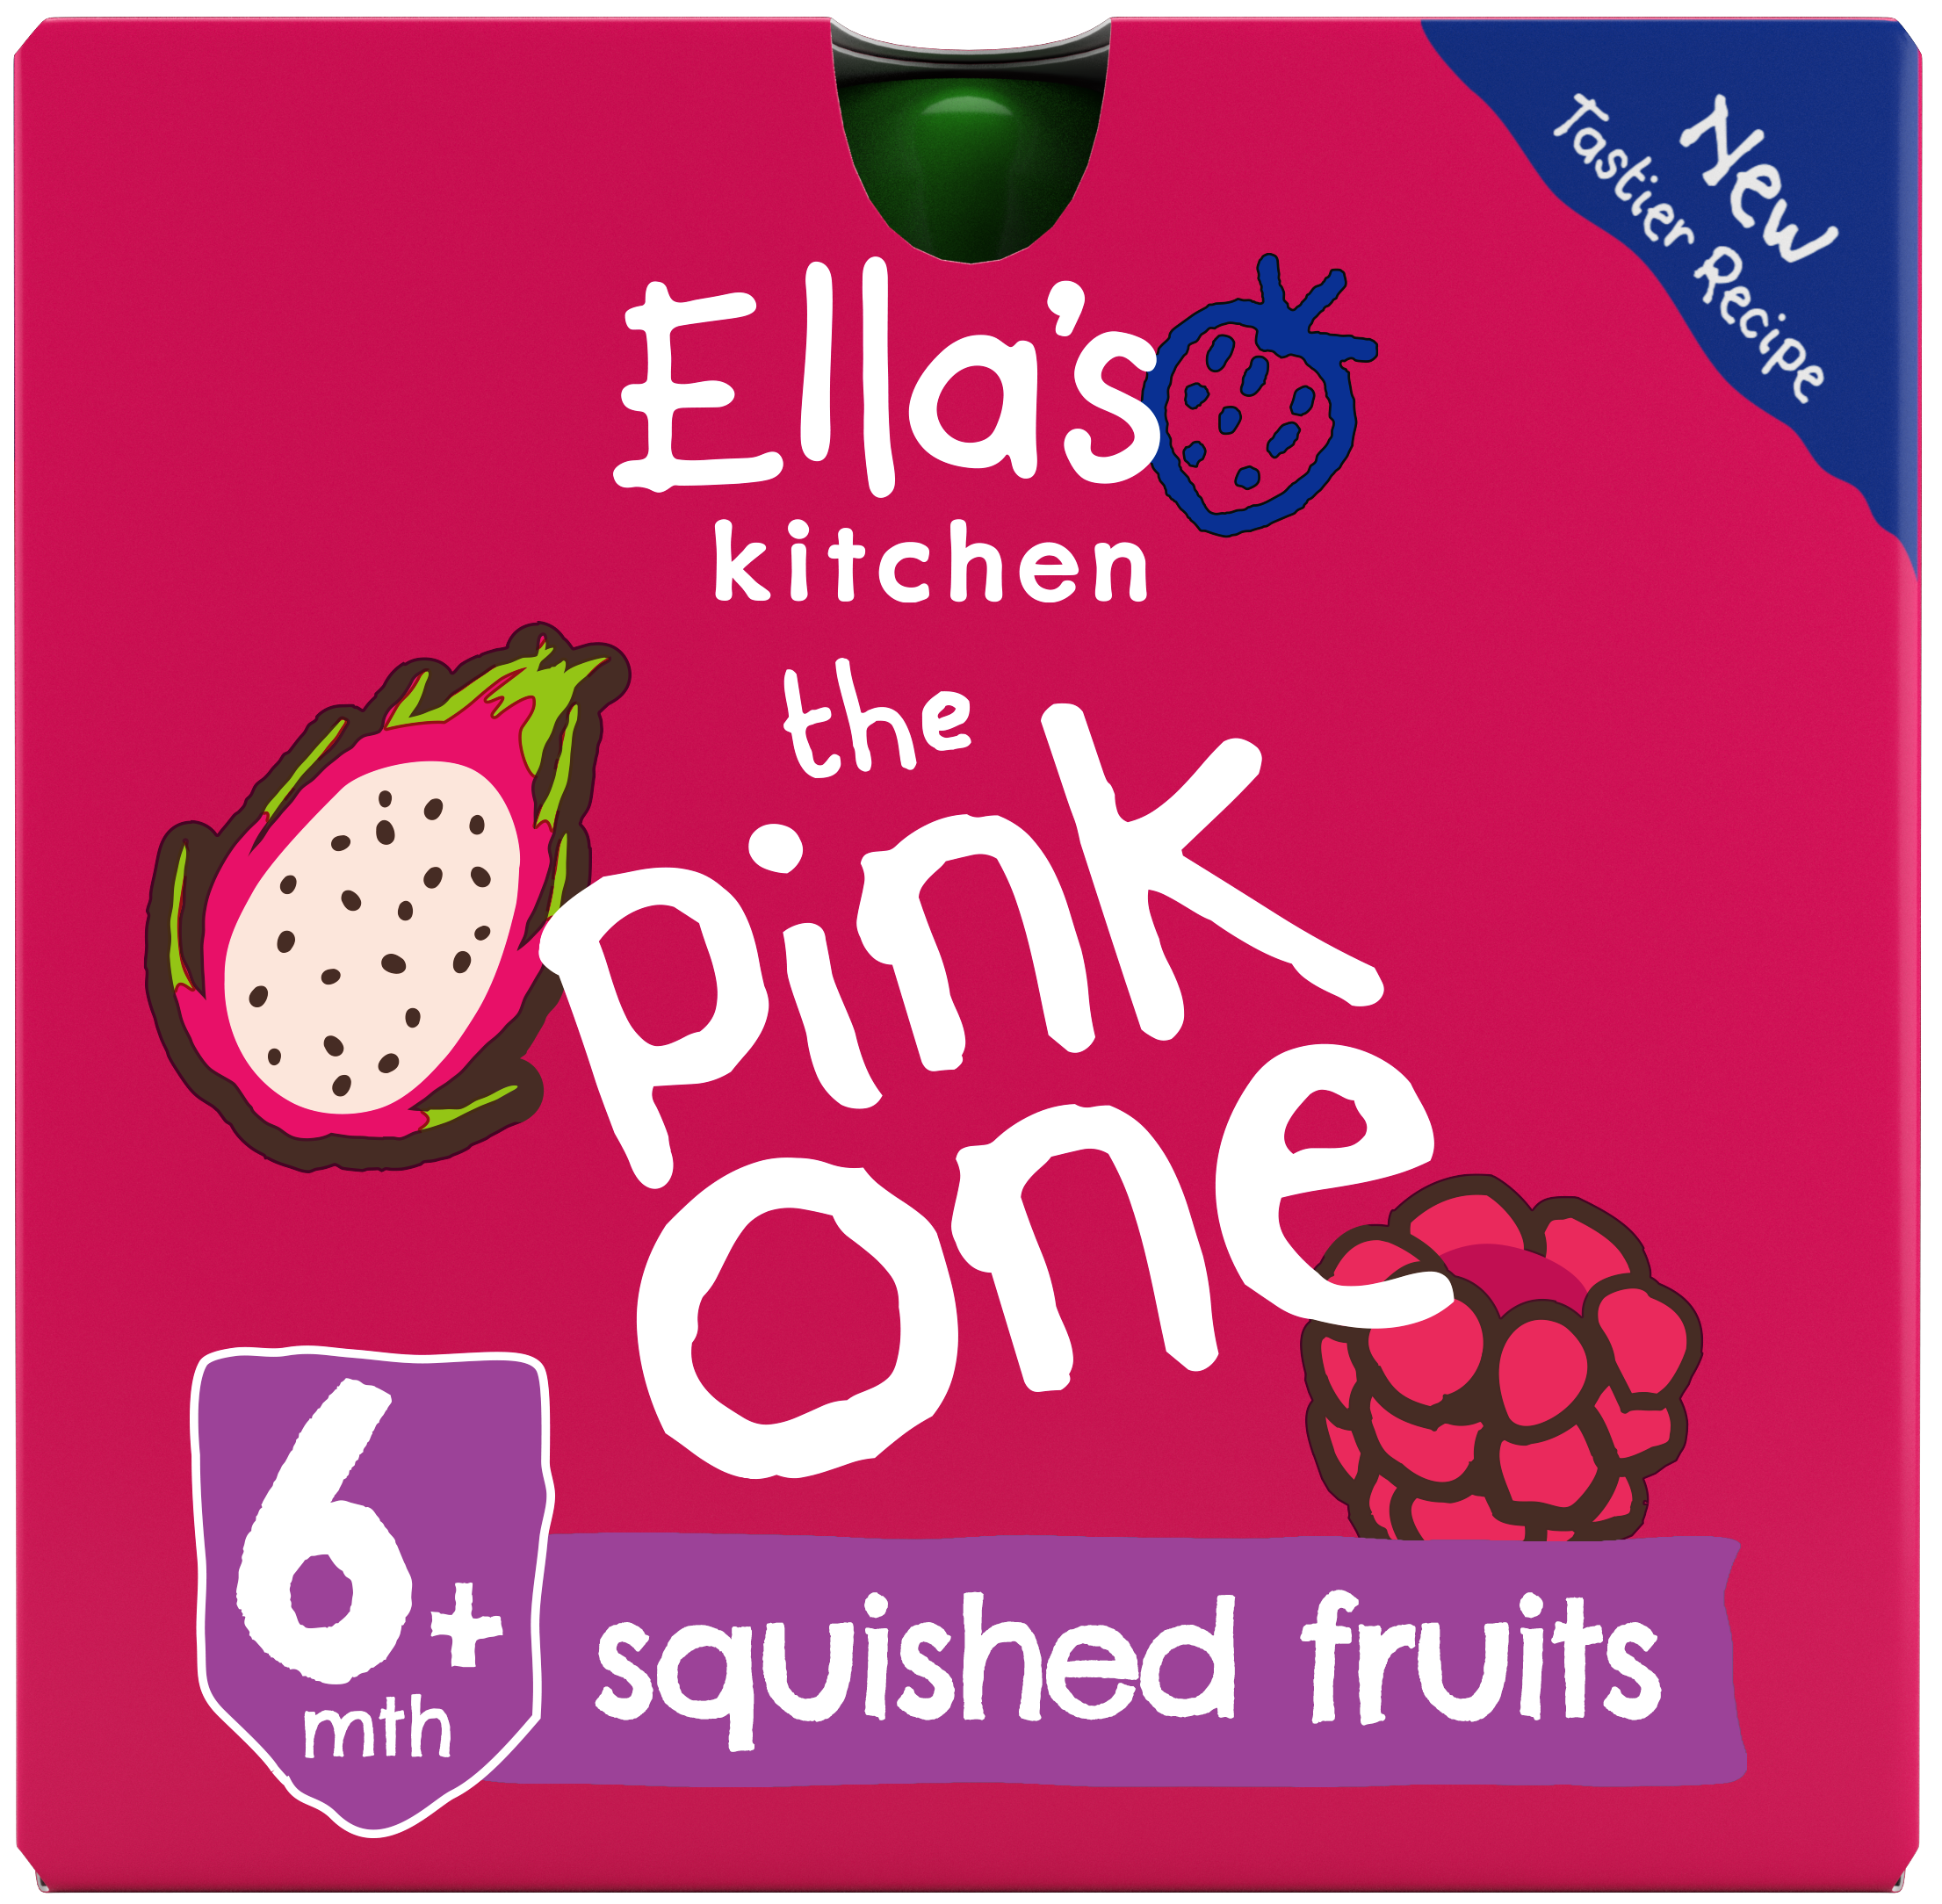 Ellas kitchen The pink one front of pack O